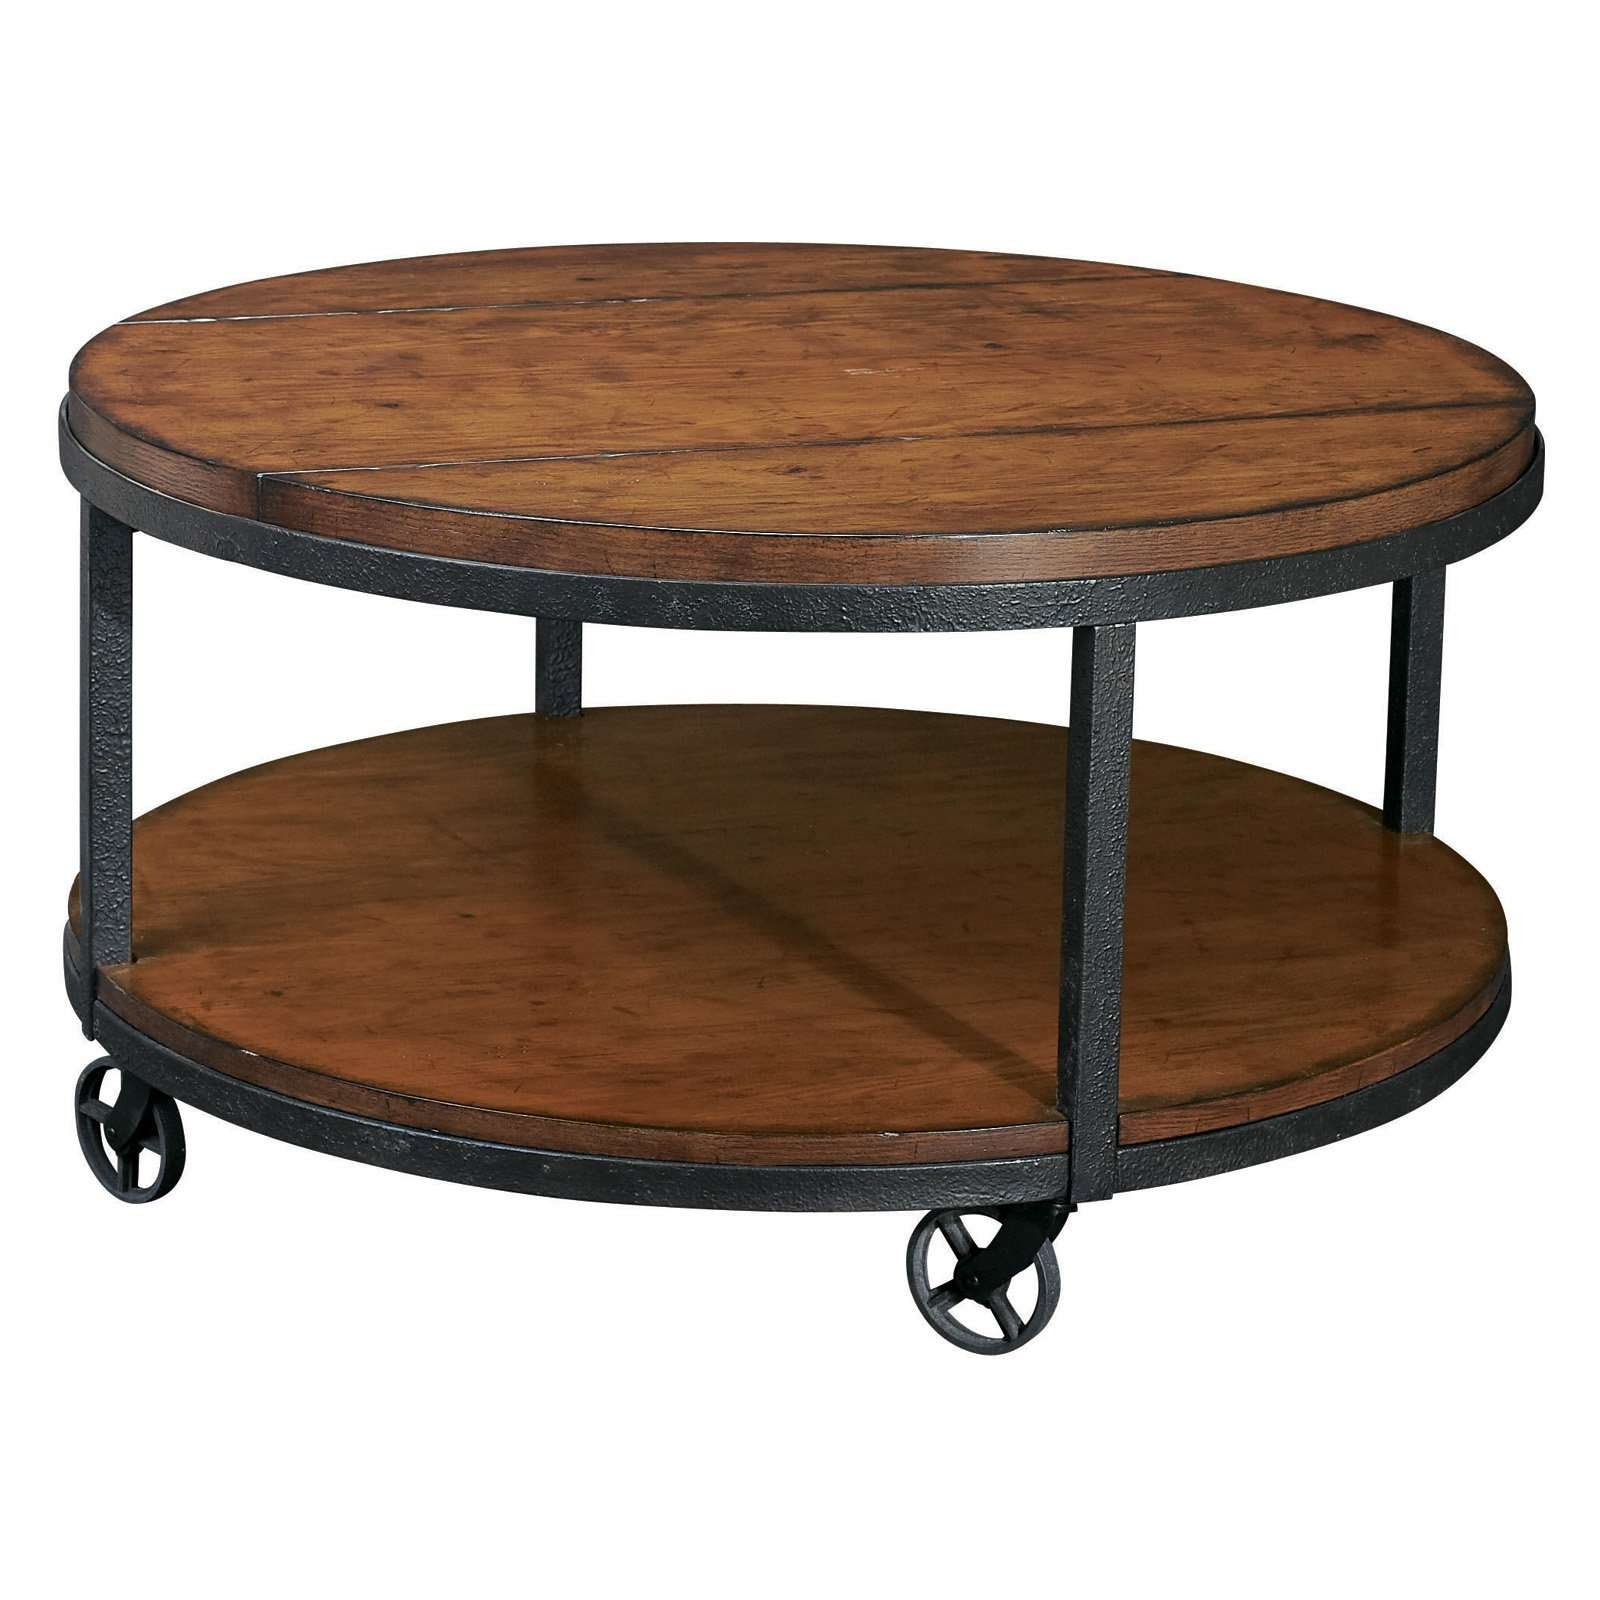 Industrial Glass Genoa Round Coffee Table With Glass Top Dark With Regard To Most Current Industrial Round Coffee Tables (Gallery 5 of 20)